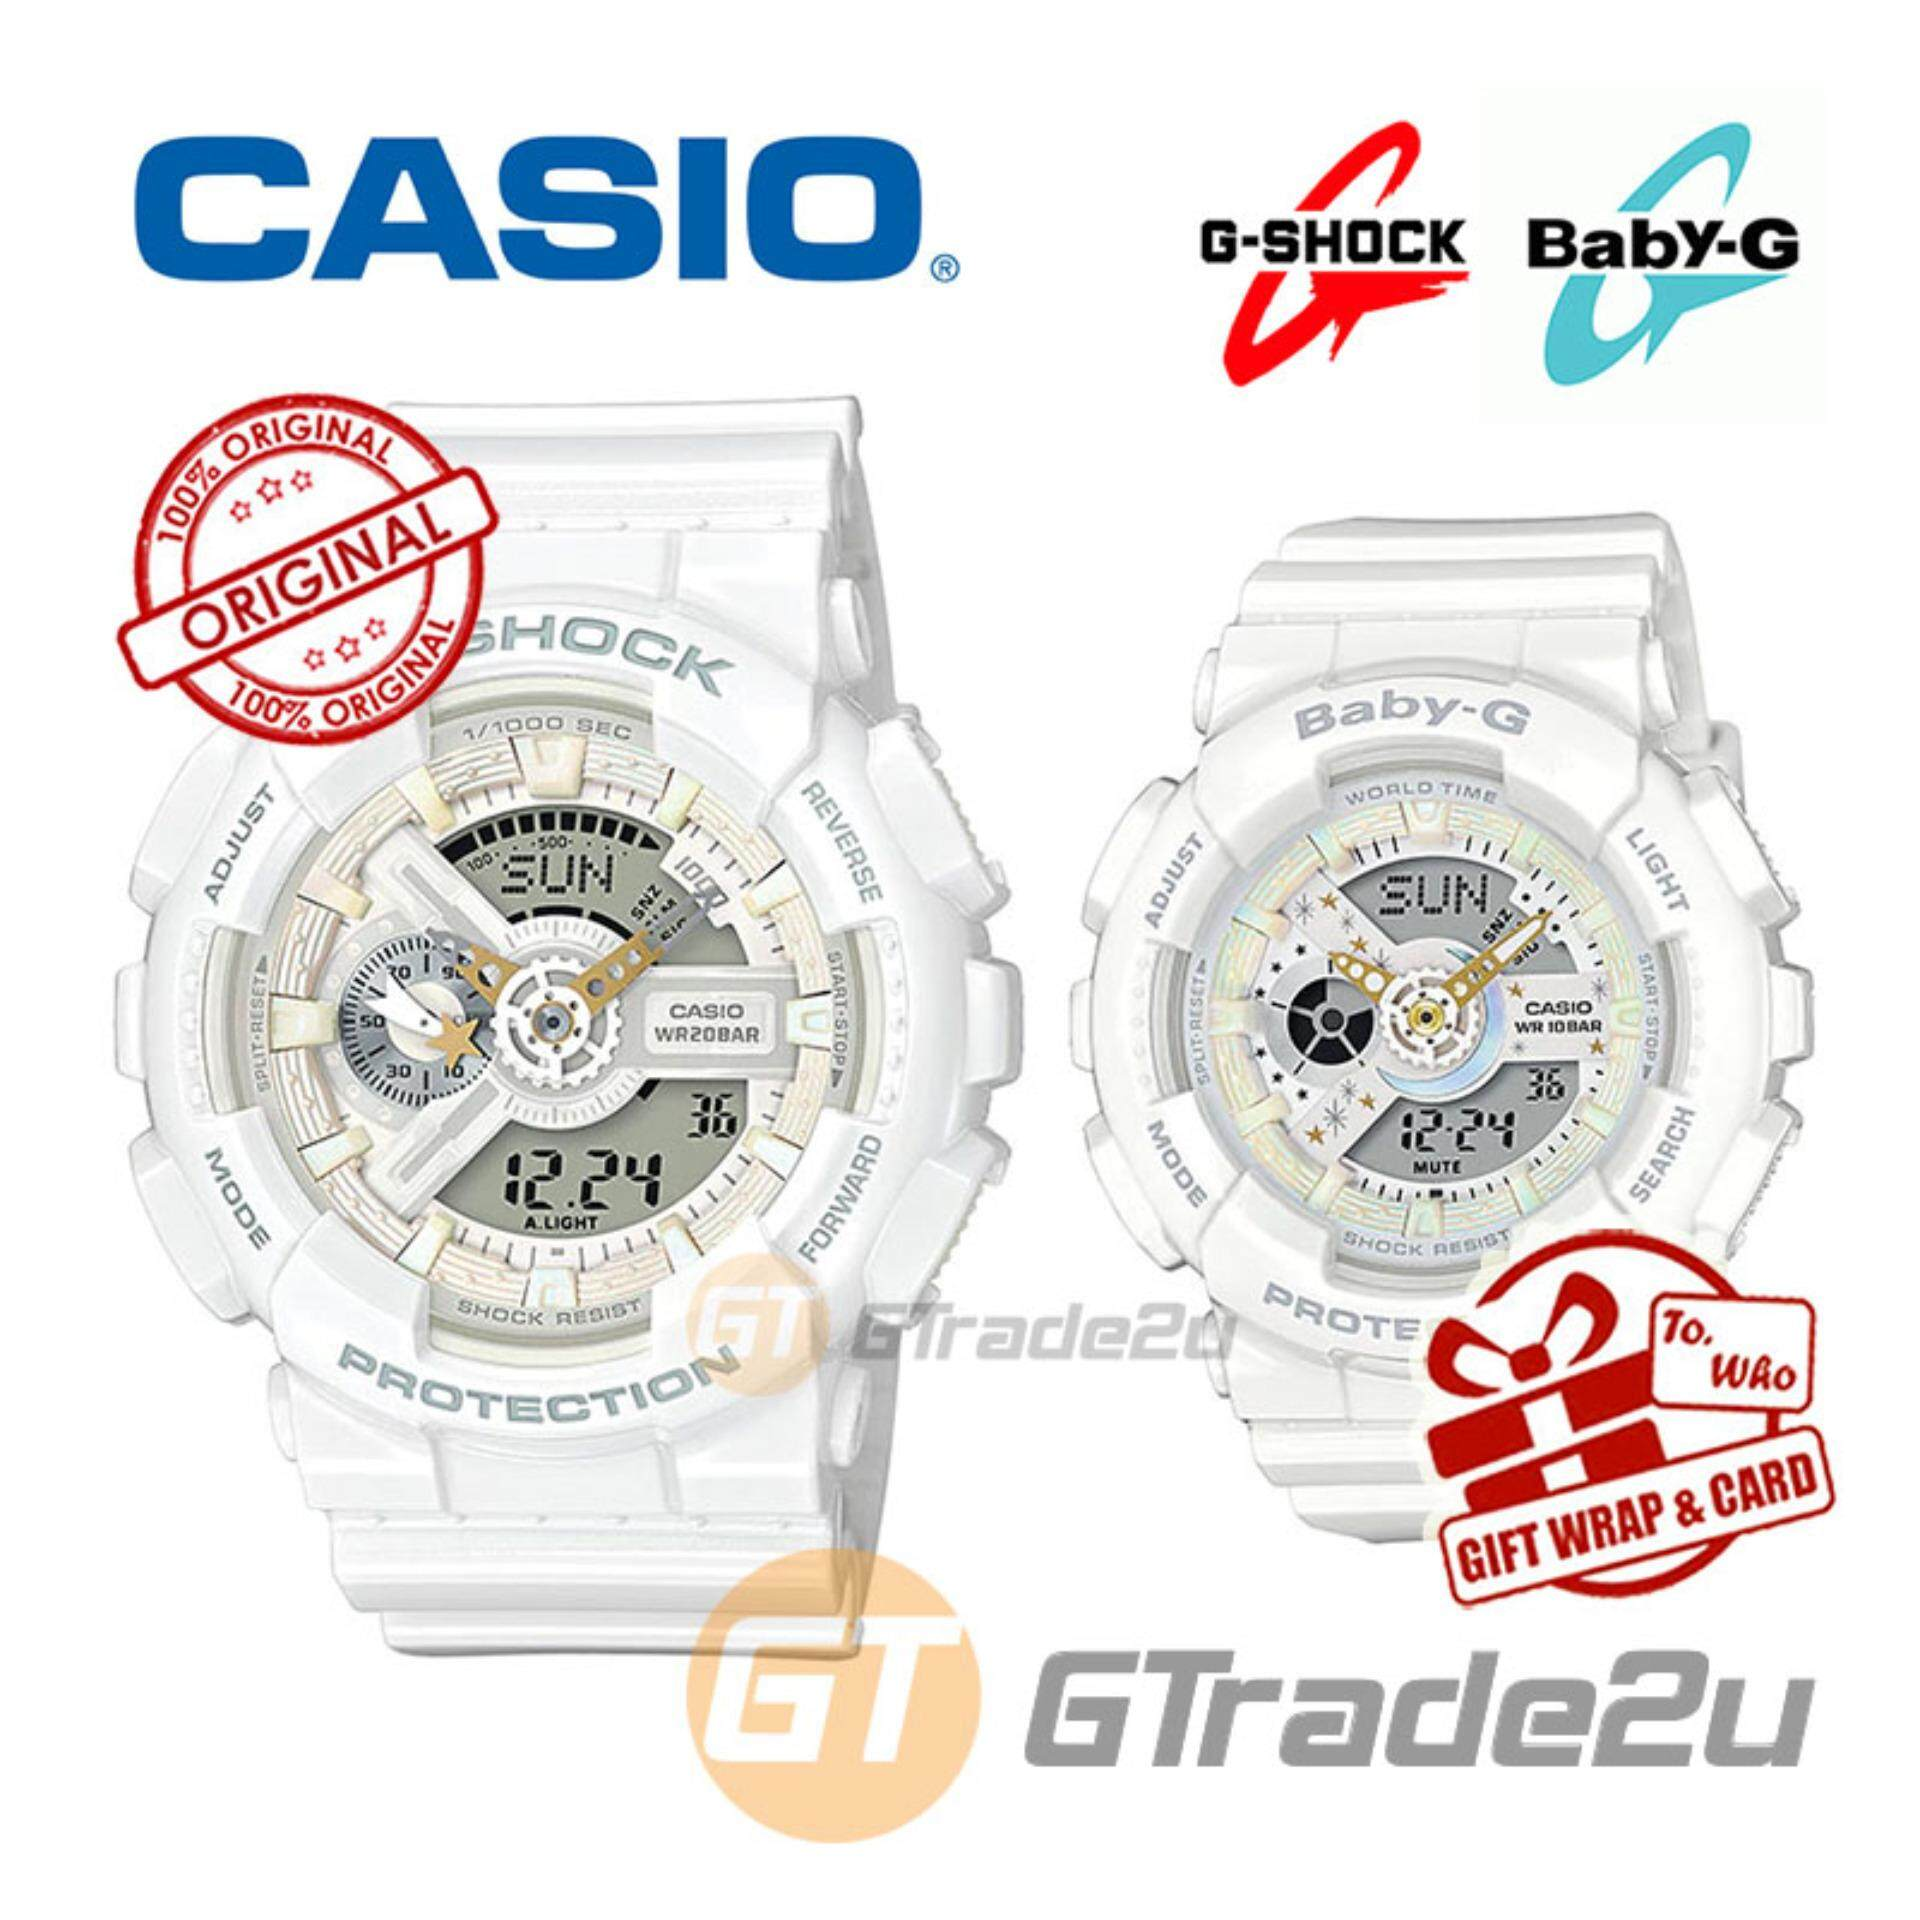 Features Baby G Shock Couple Watches Ba112 7a Ga110ac Dan Casio Ba 112 Lov 17a Watch Lover Limited